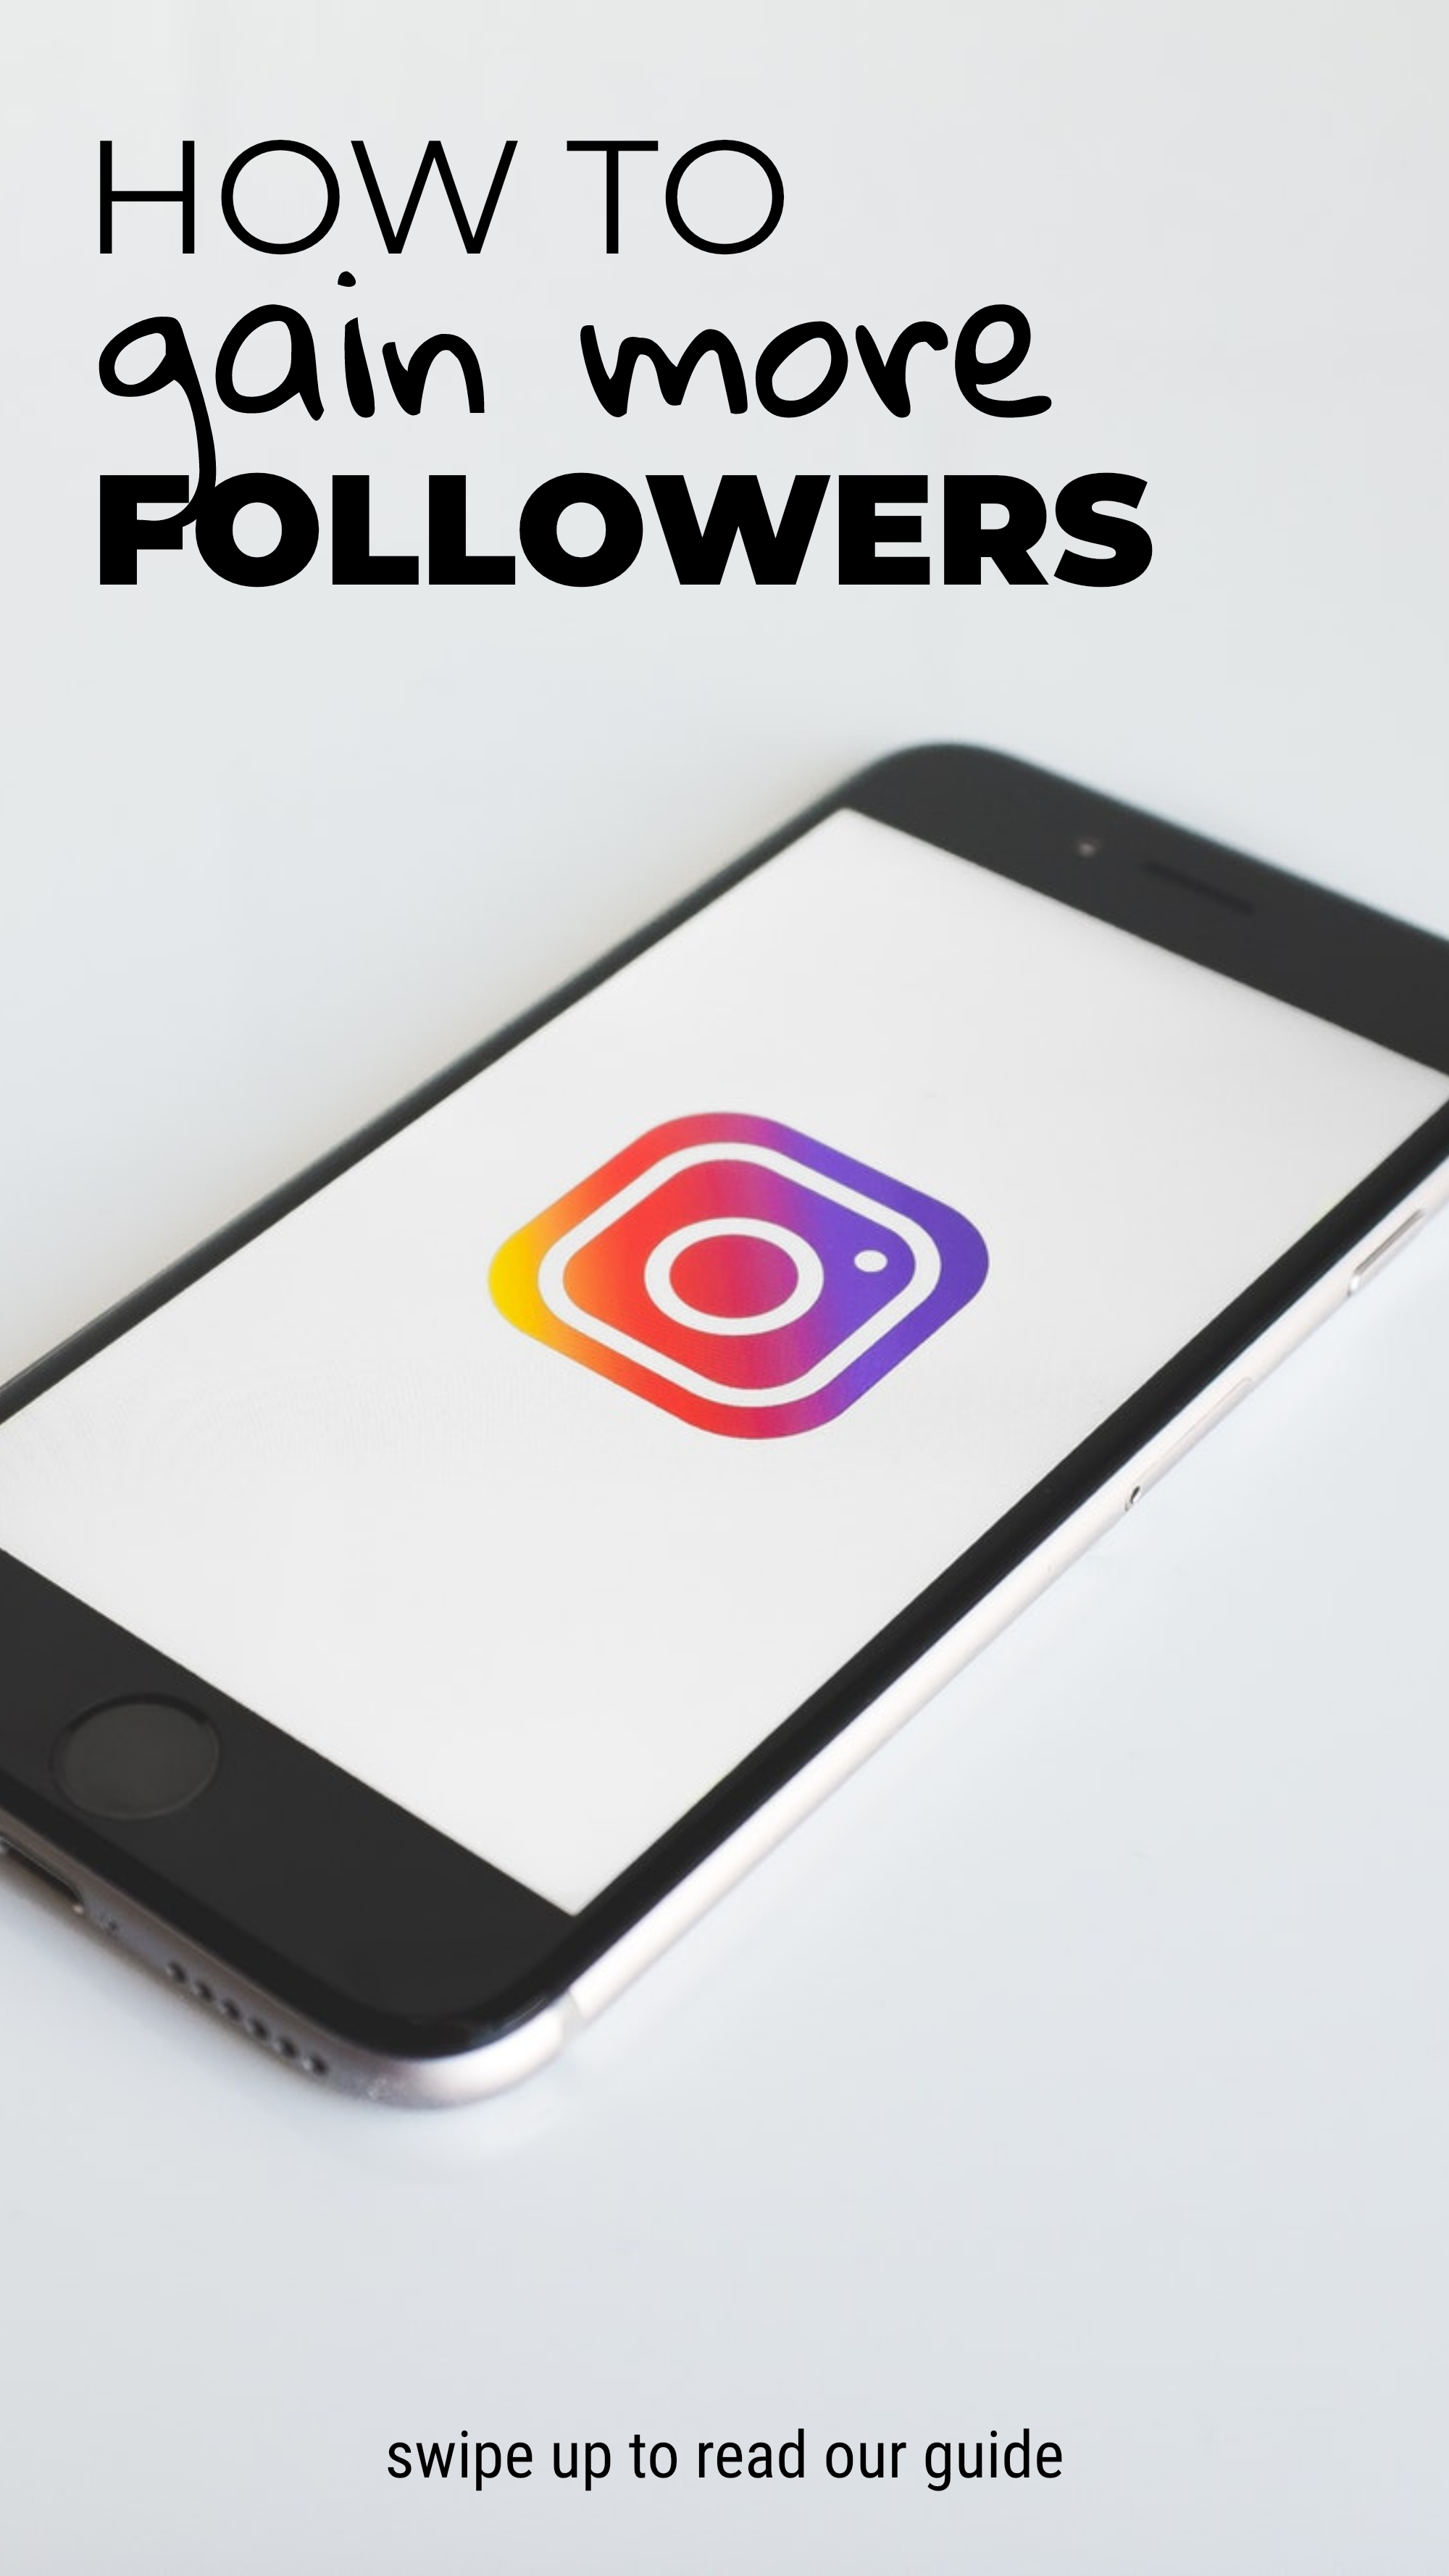 Story Template How To Gain More Followers Swipe Up To Read Our Guide Instagram Story Template